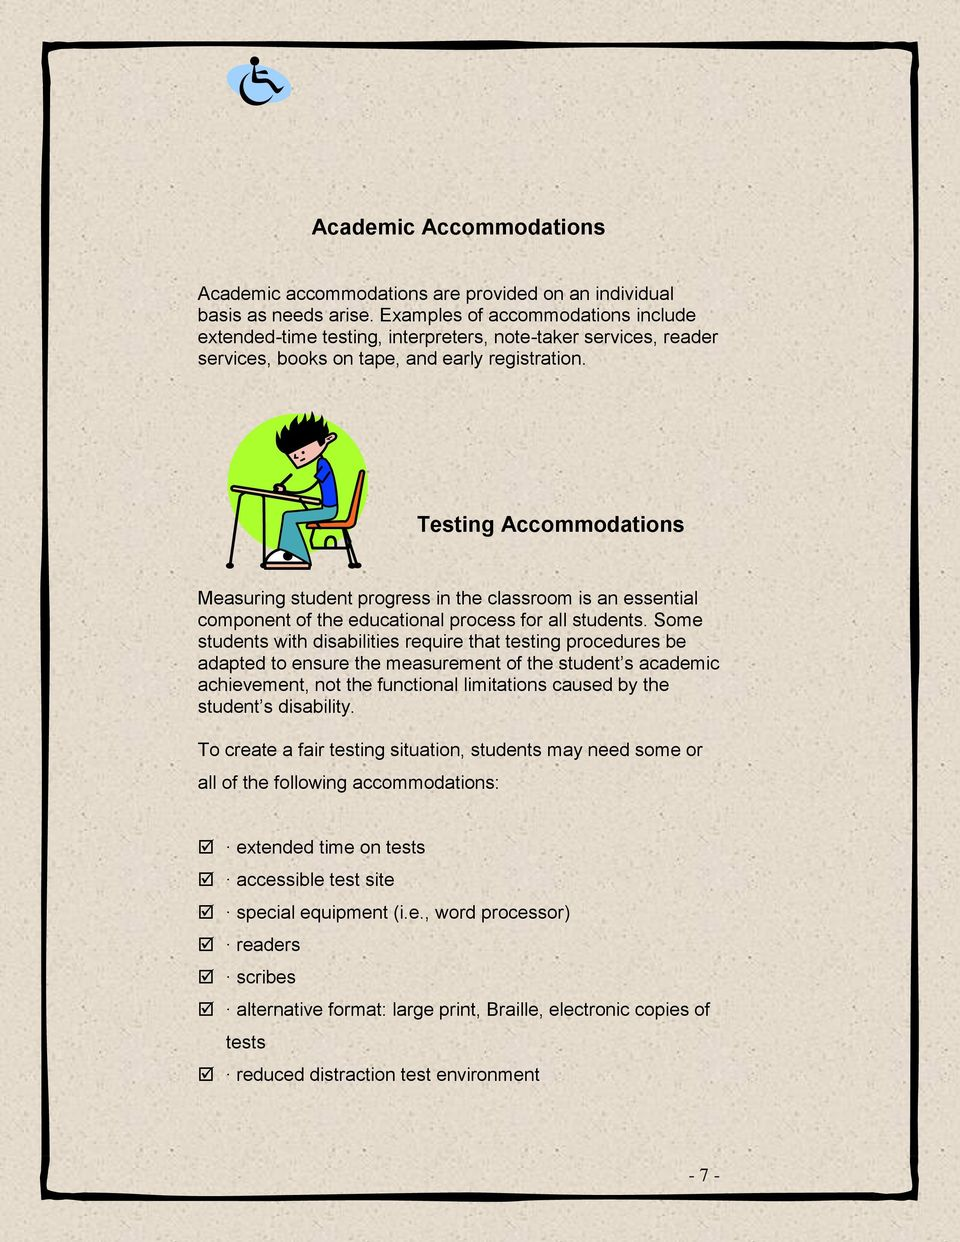 Testing Accommodations Measuring student progress in the classroom is an essential component of the educational process for all students.